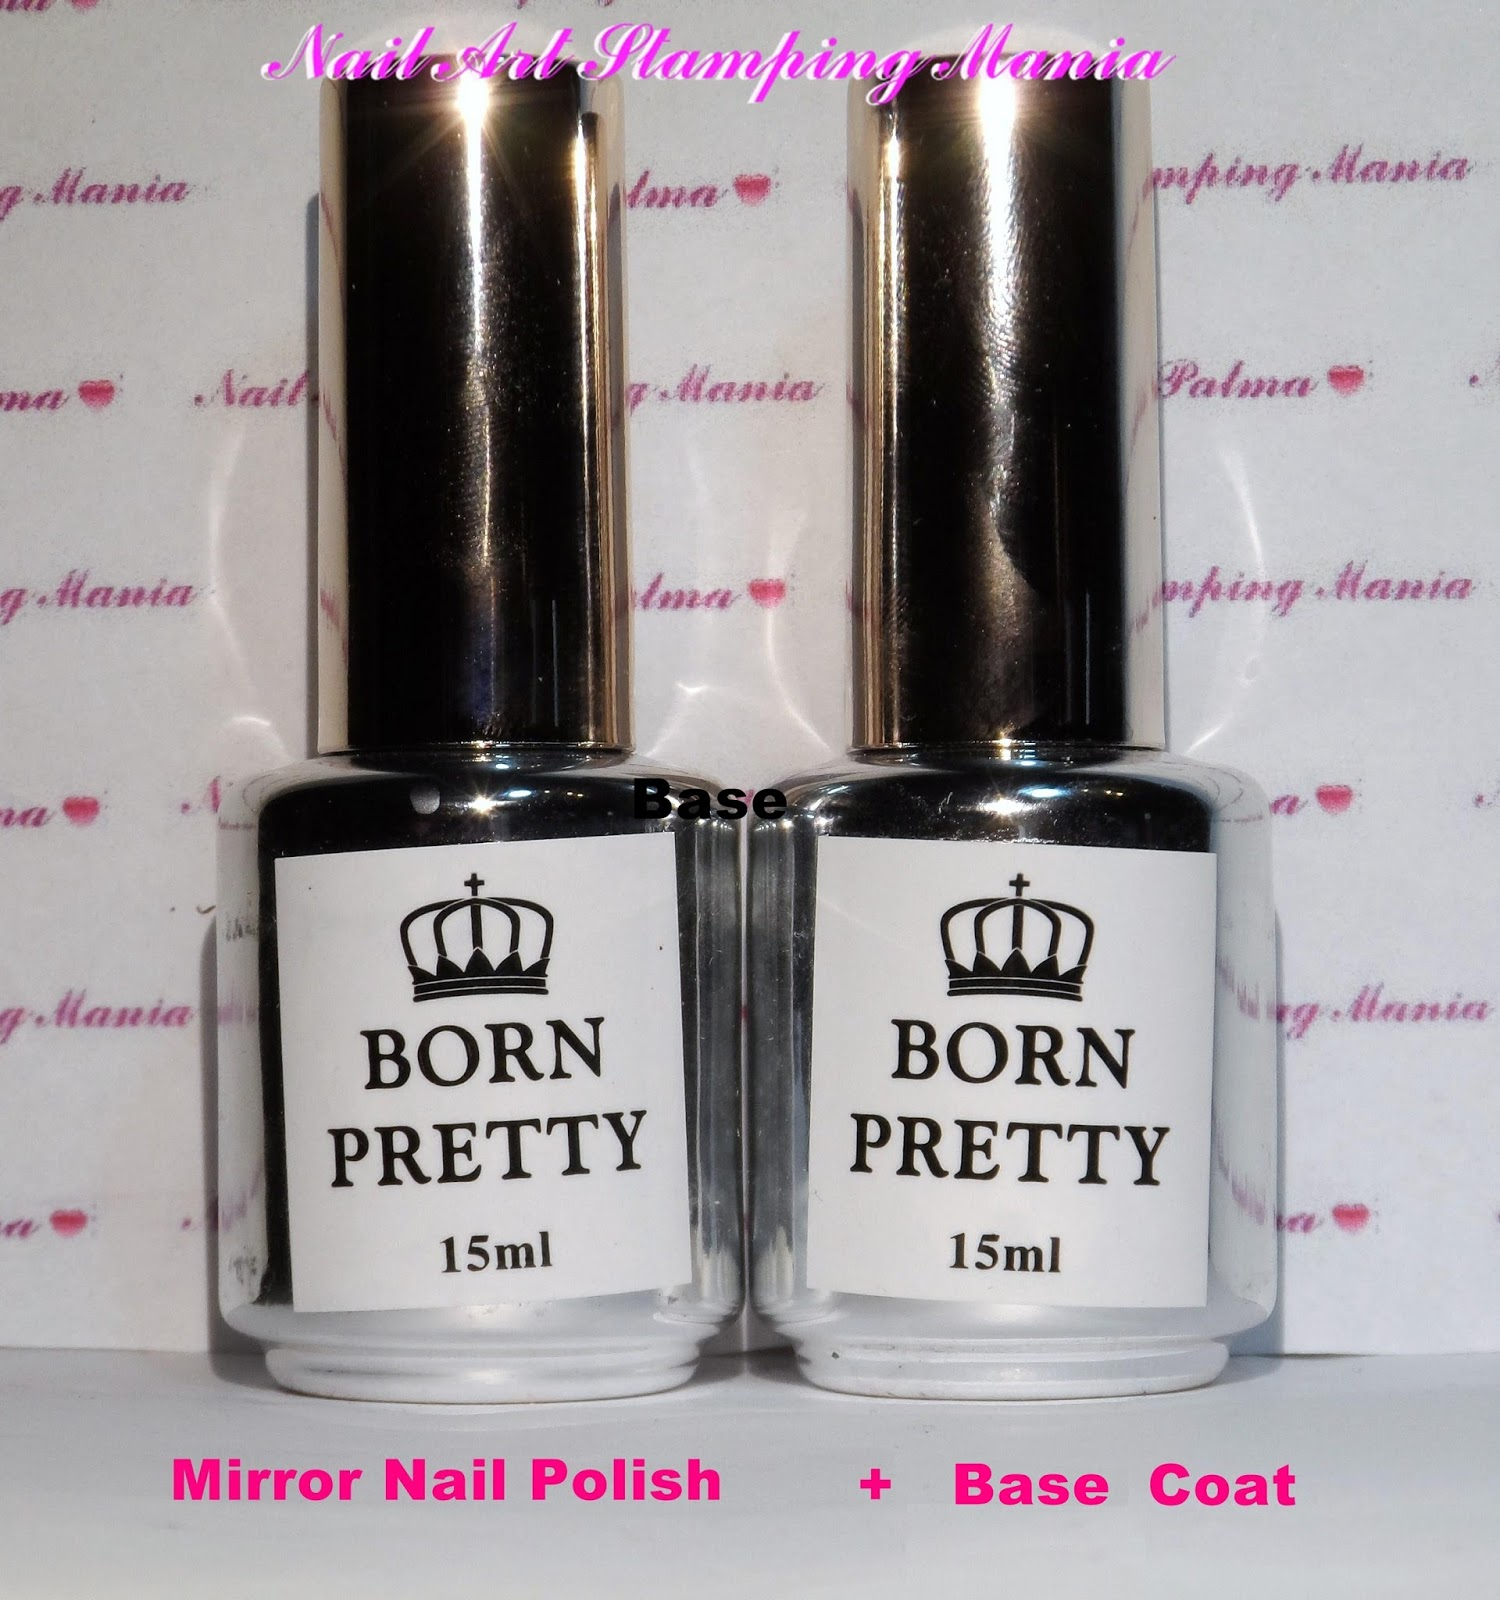 Nail Art Stamping Mania Mirror Nail Polish From Born